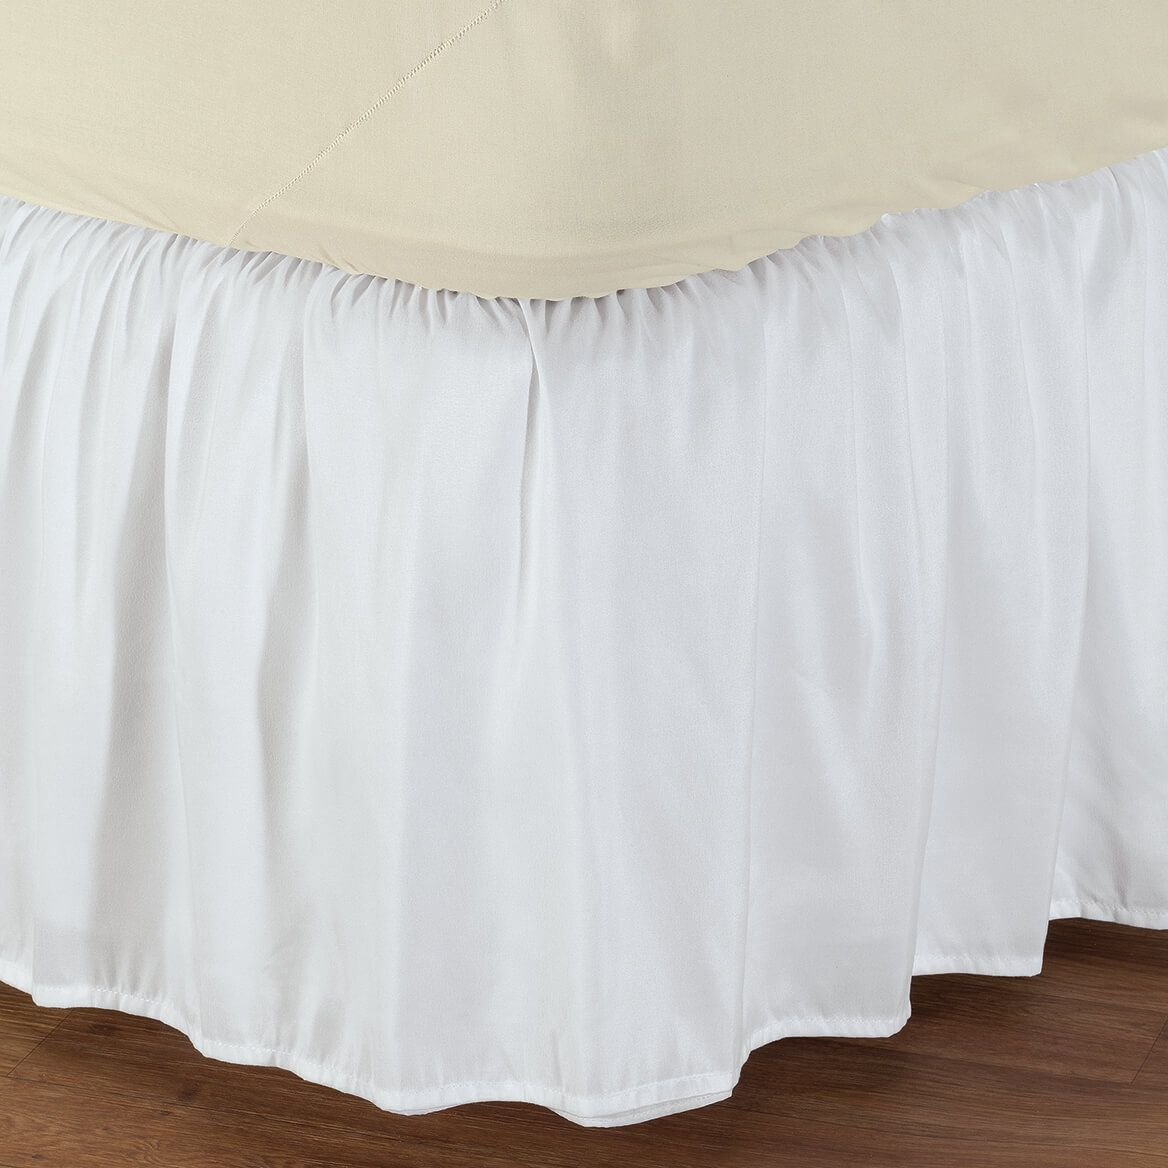 Ruffled Bed-Tite™ Bed Skirt-367159